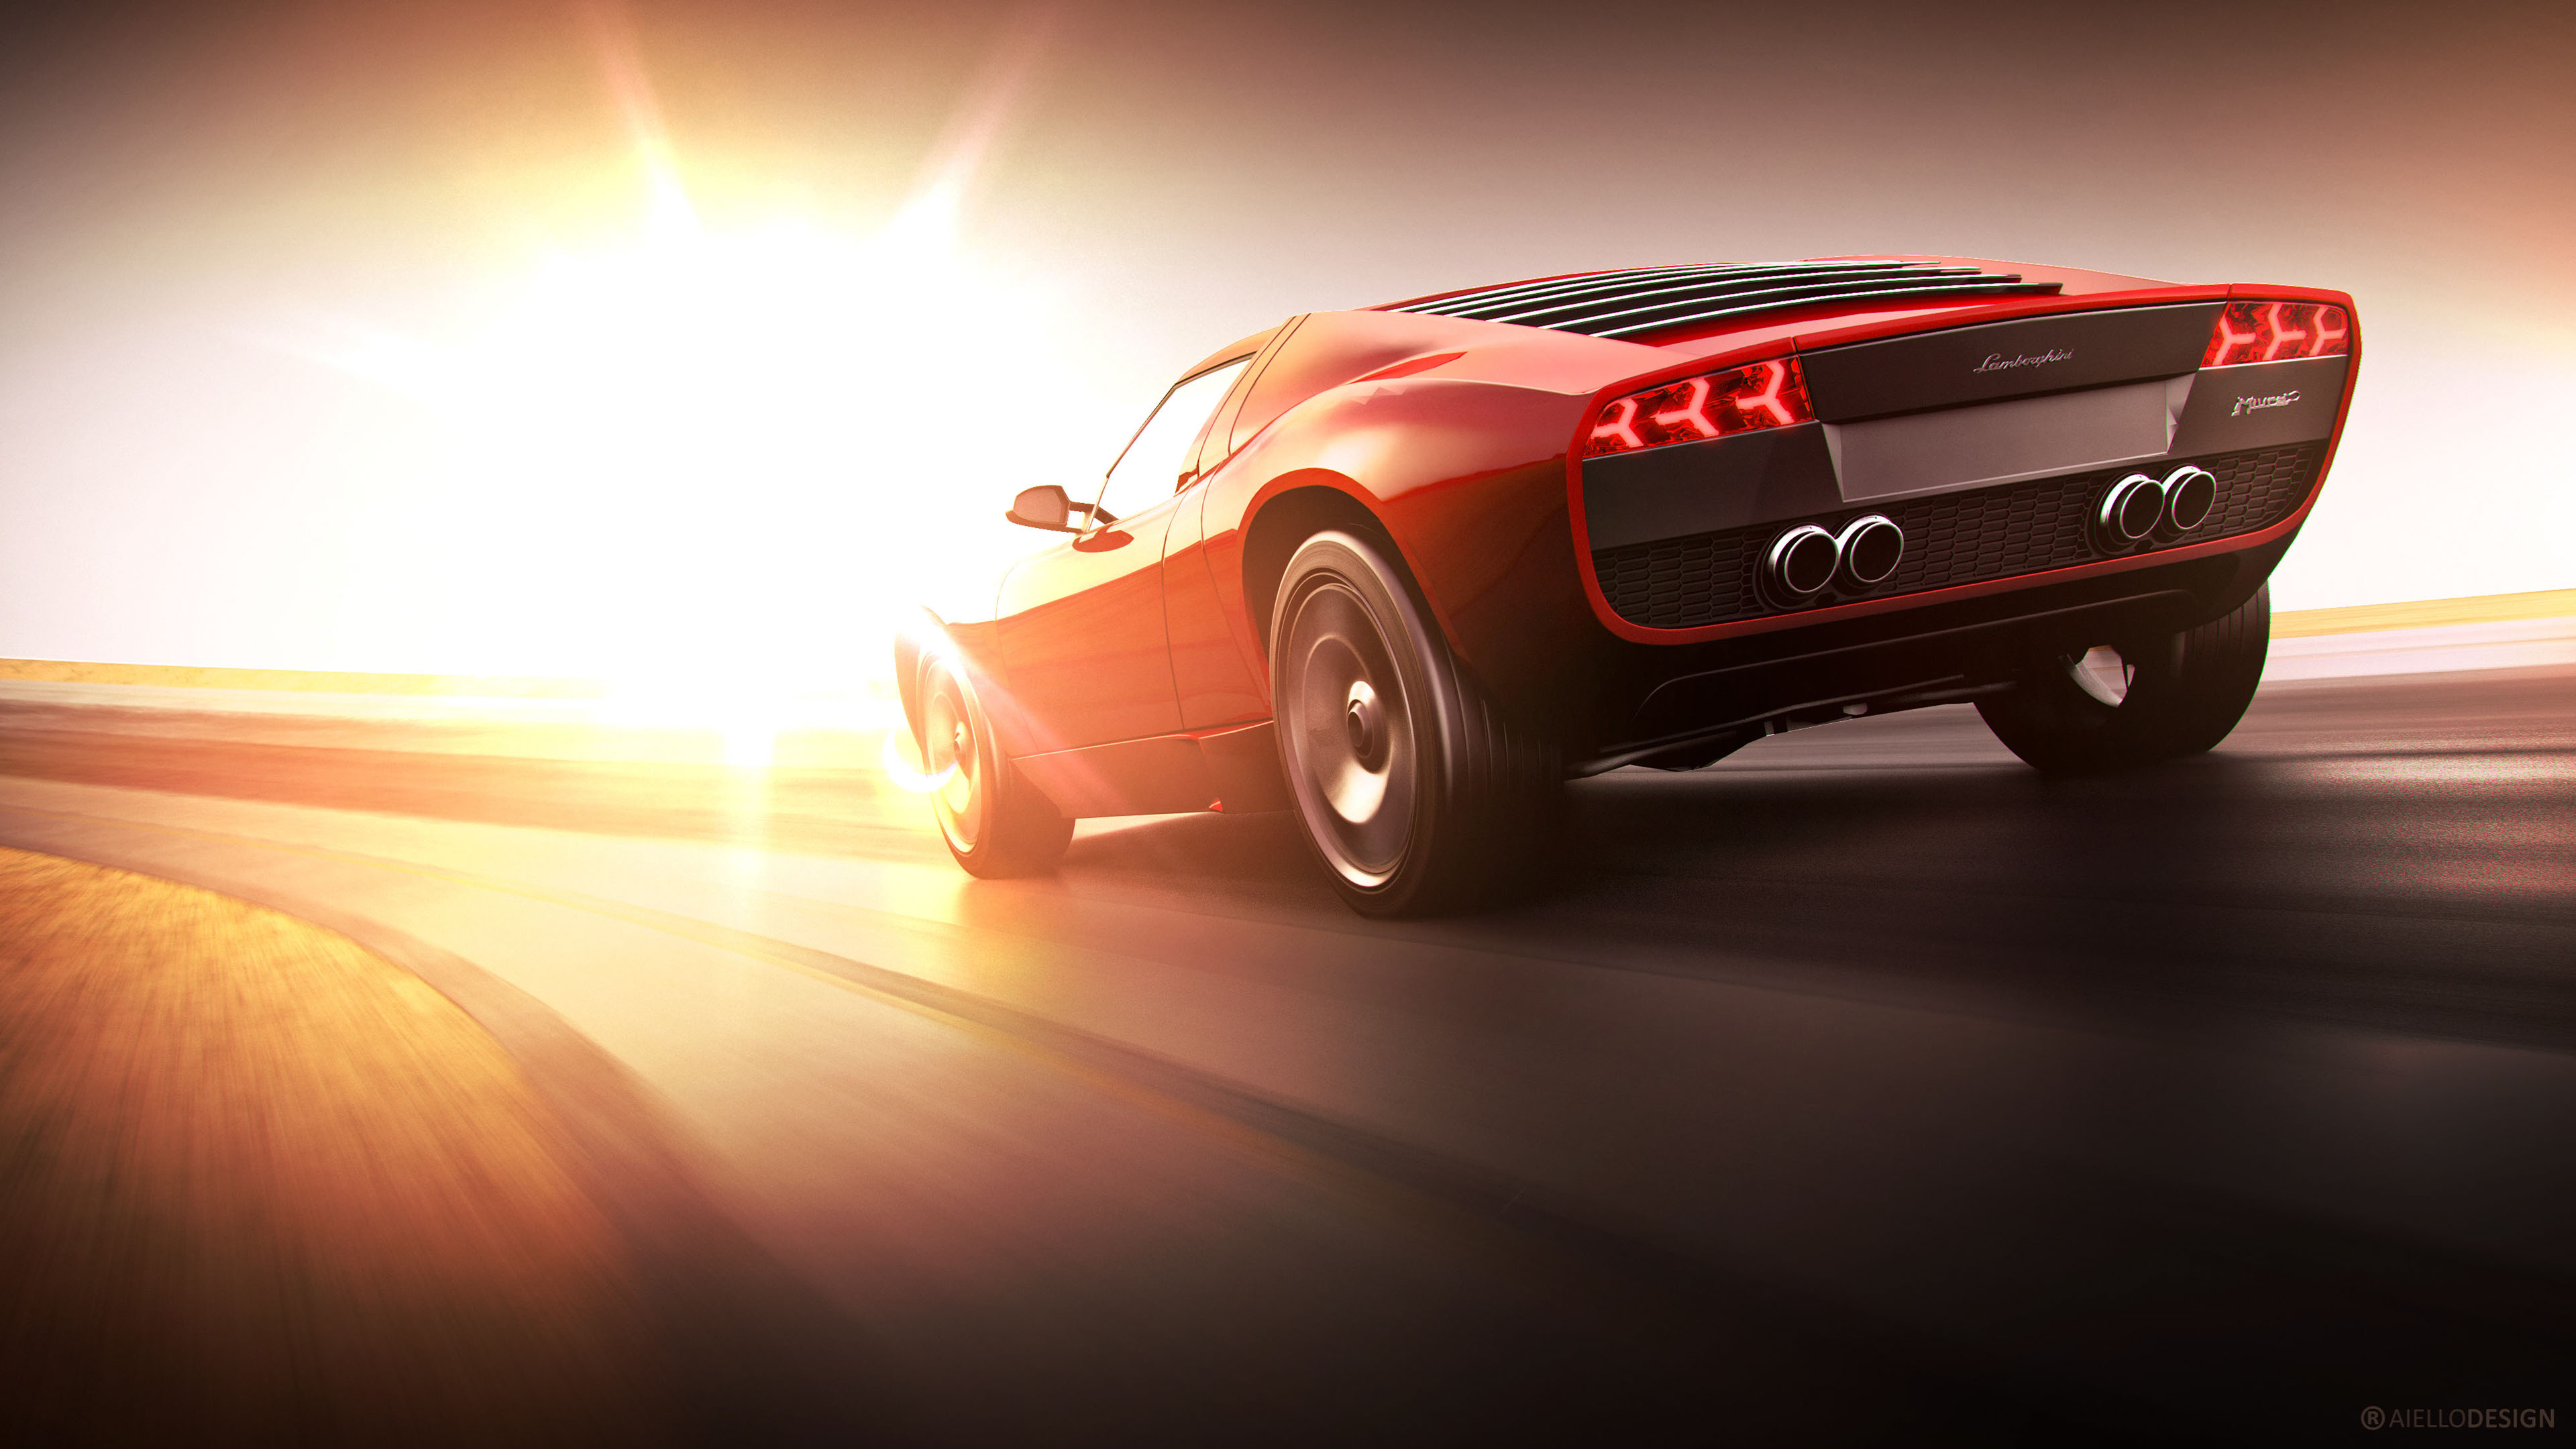 Lamborghini Racing CGI Wallpaper | HD Car Wallpapers | ID ...